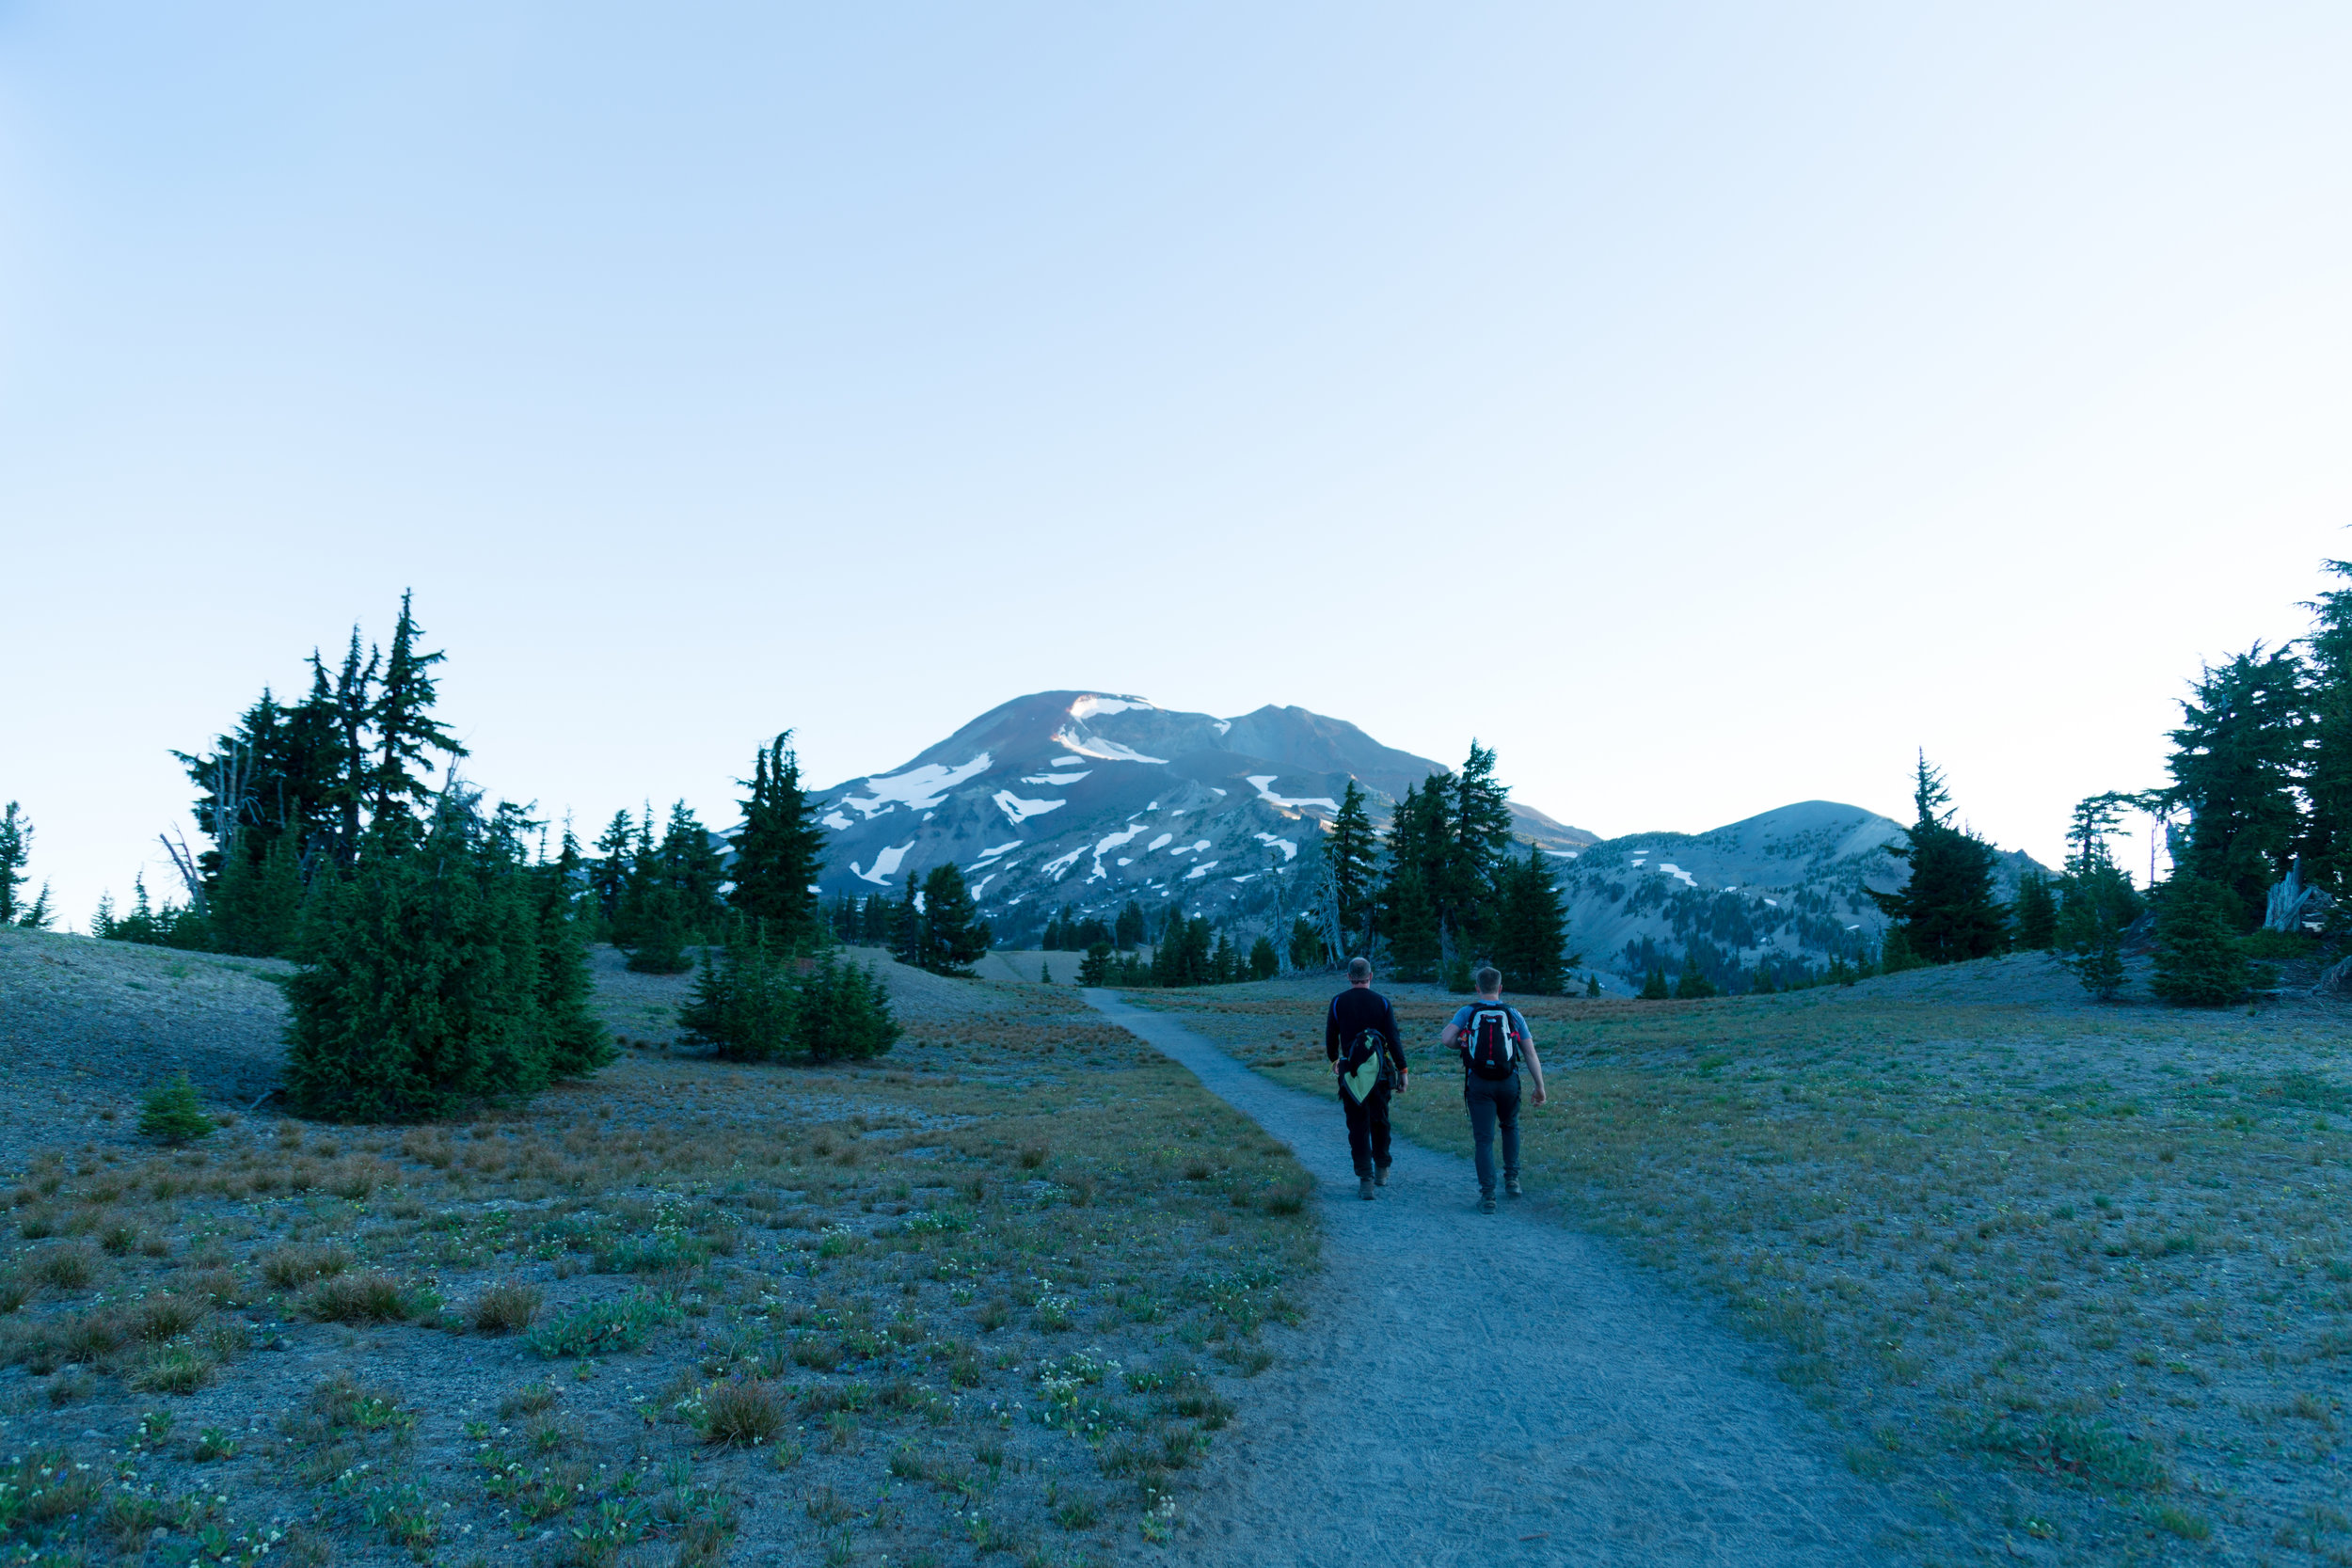 South Sister up ahead as we strolled through beautiful meadows and rolling hills